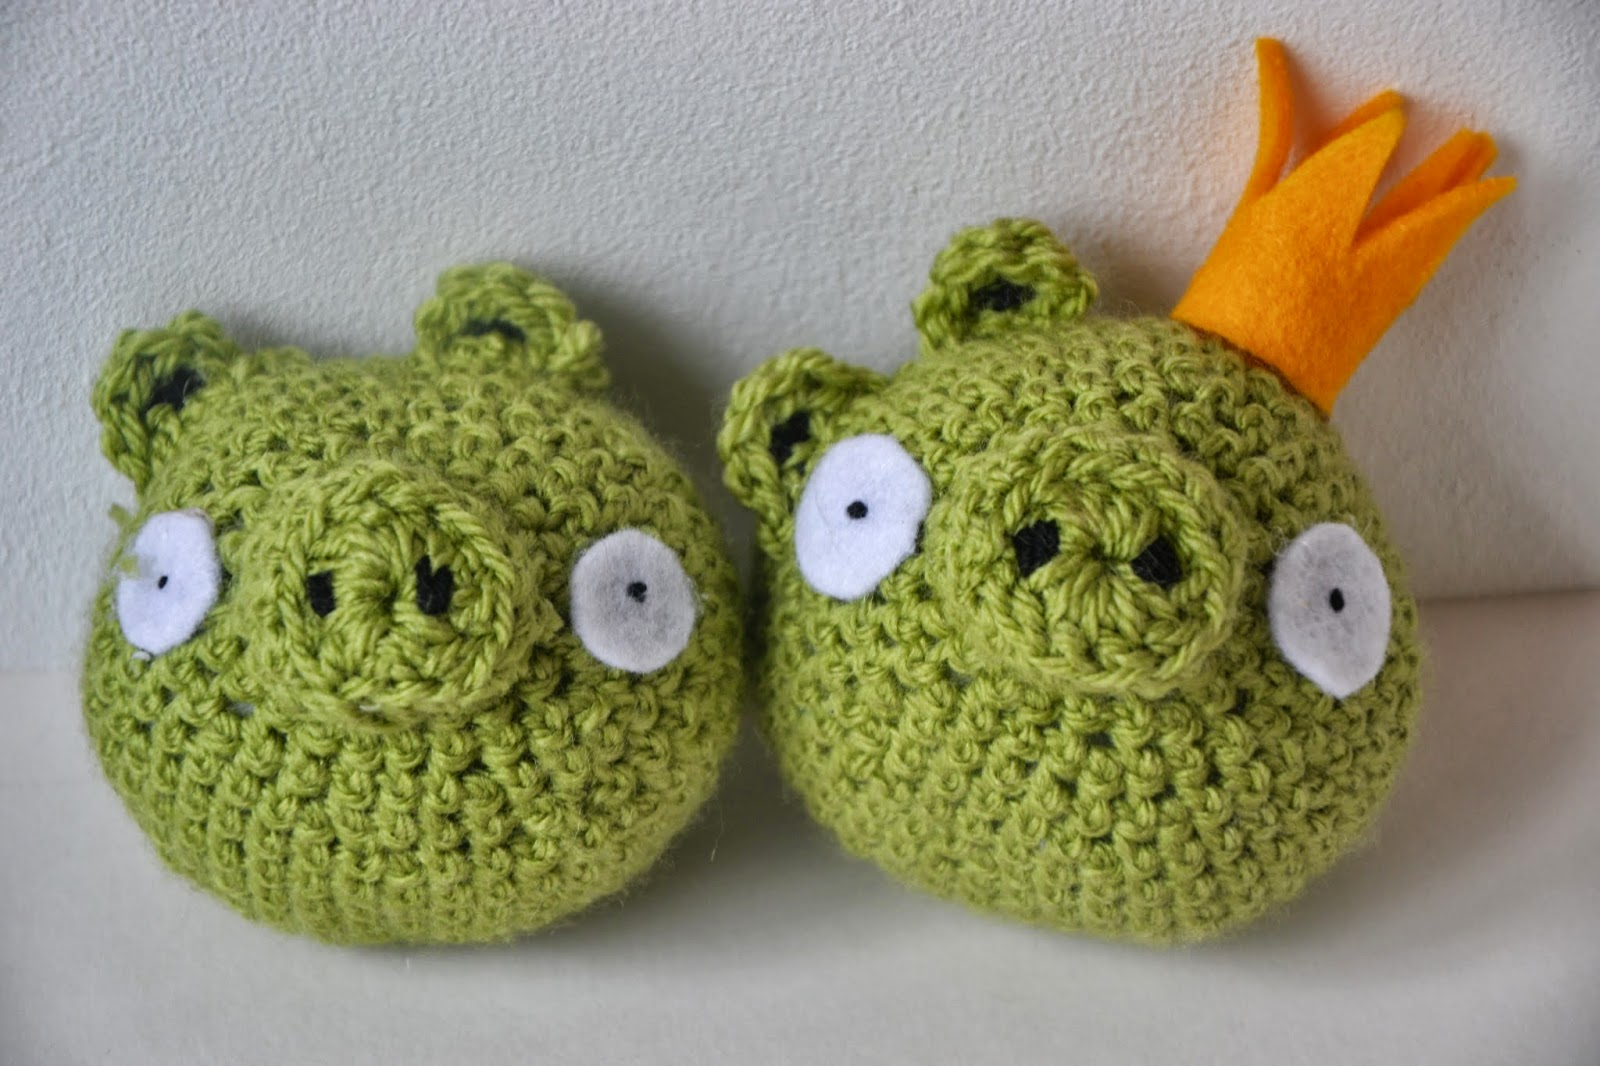 Crochet Pig and King Pig